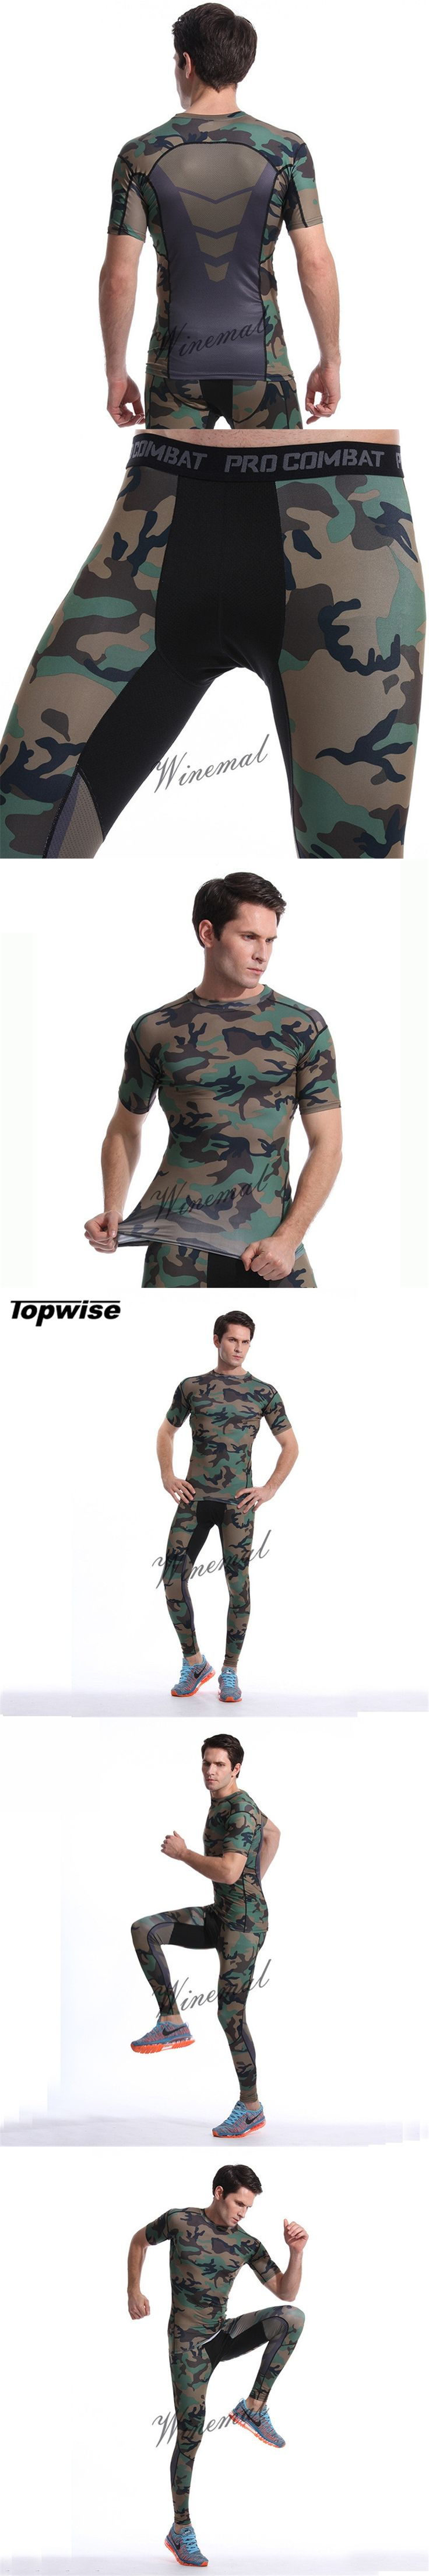 Men Camouflage Running Set Compression Suit T Shirt Fitness Leggings For Running Gym Training Sport Tights Sets Fitness Wear